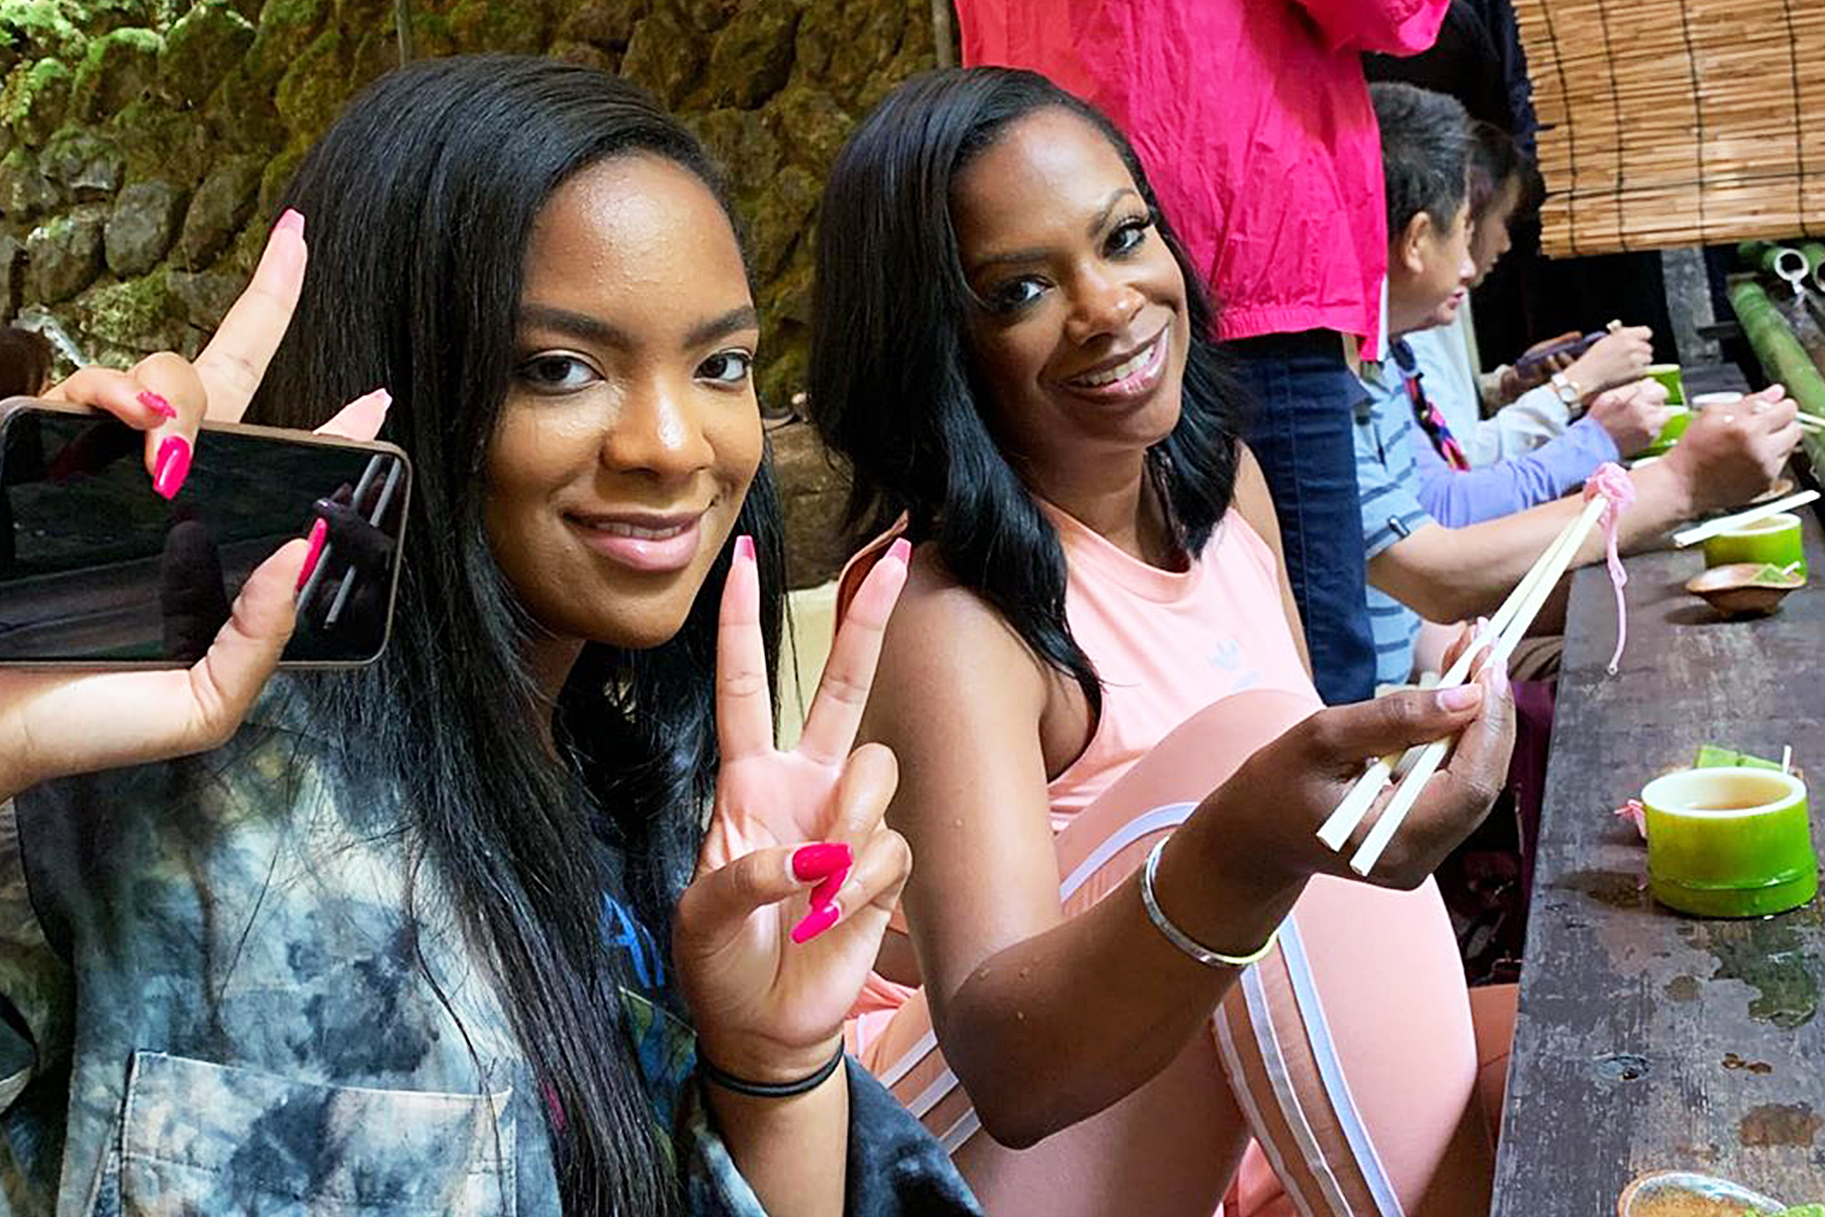 """""""kandi-burruss-shares-more-pics-from-beautycon-event-check-out-riley-burruss-in-the-pics"""""""